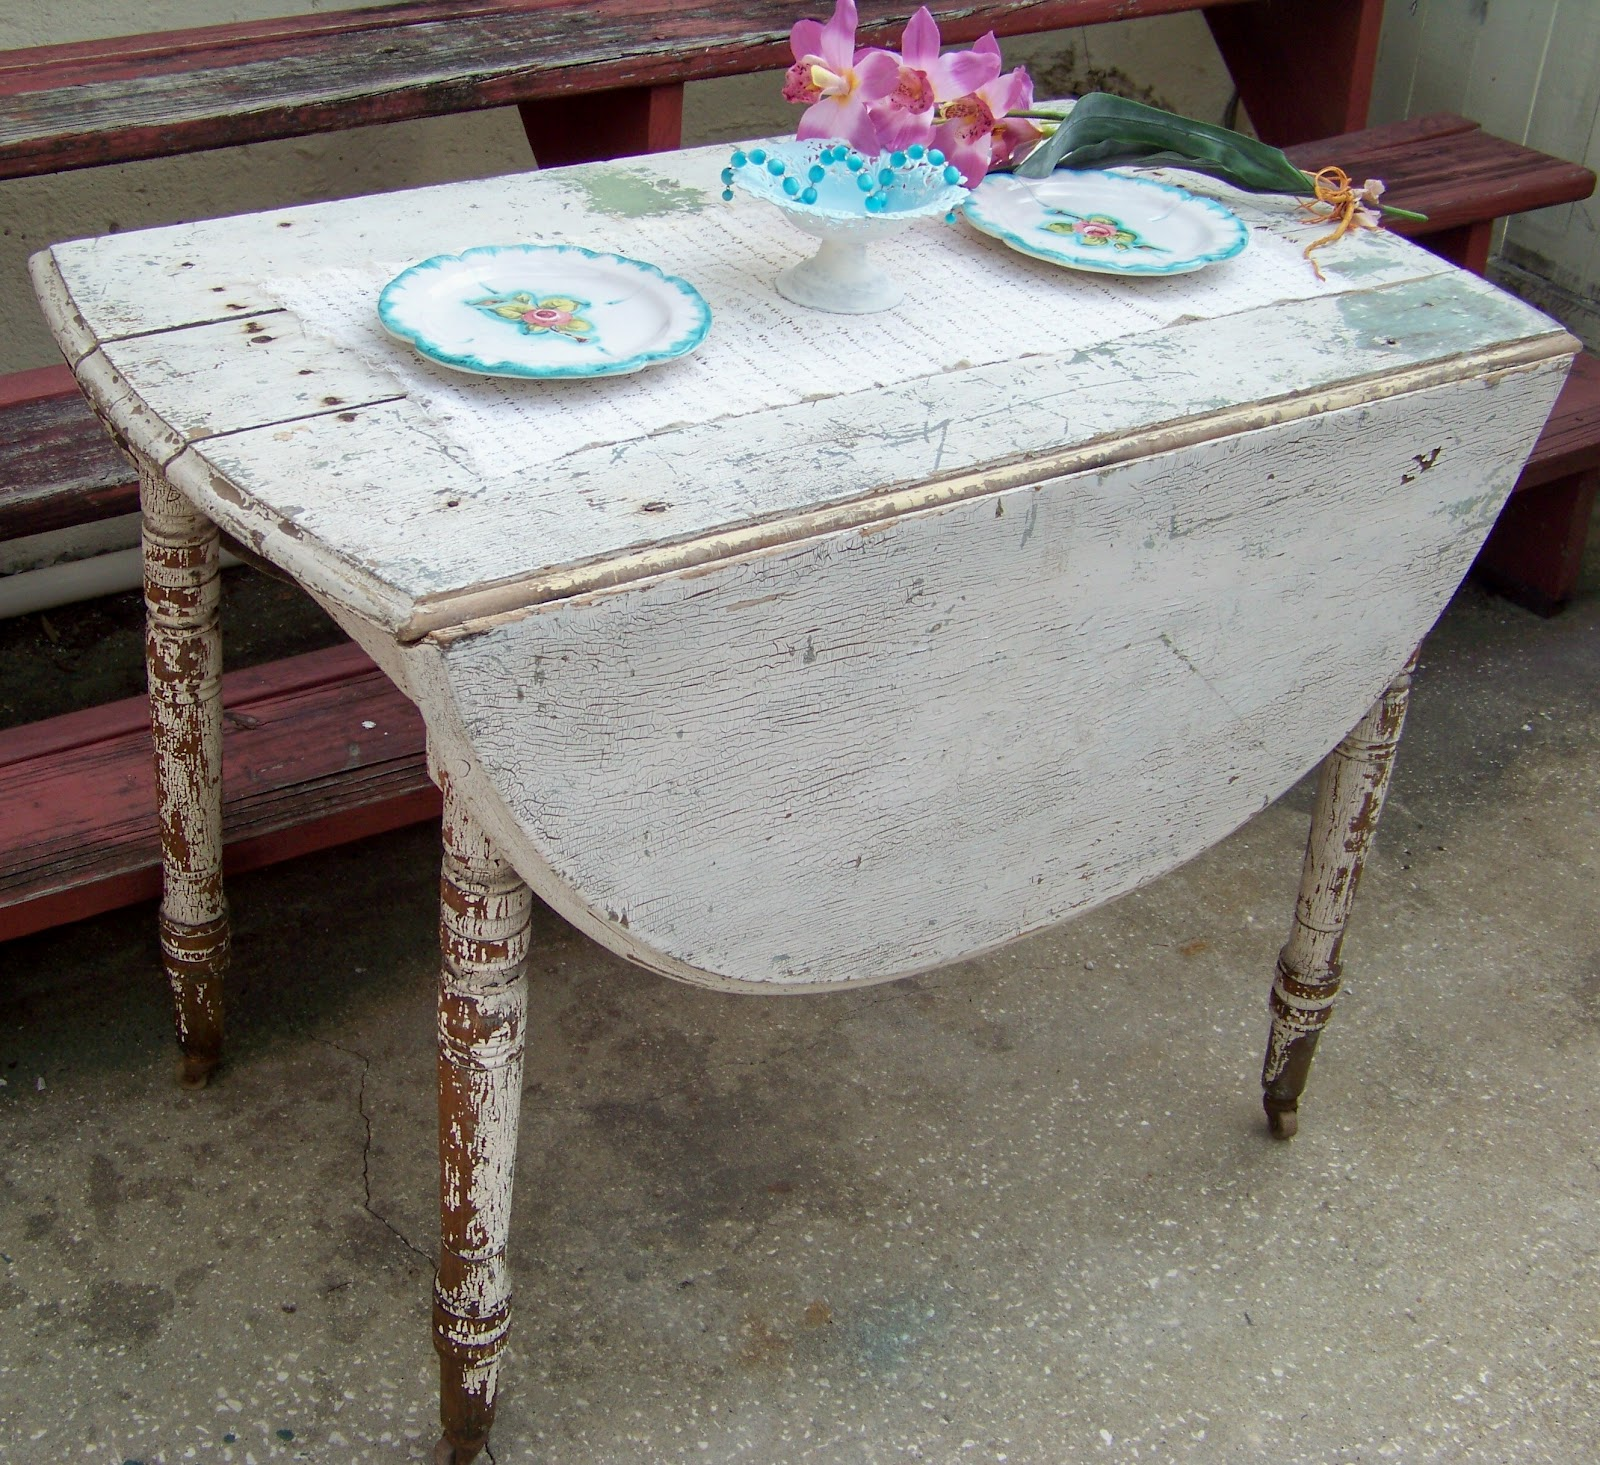 Last Week I Showed You A Wonderful Old Kitchen Sink Found This Chippy Painted Vintage Table It Was Pretty Desirable Except One Of